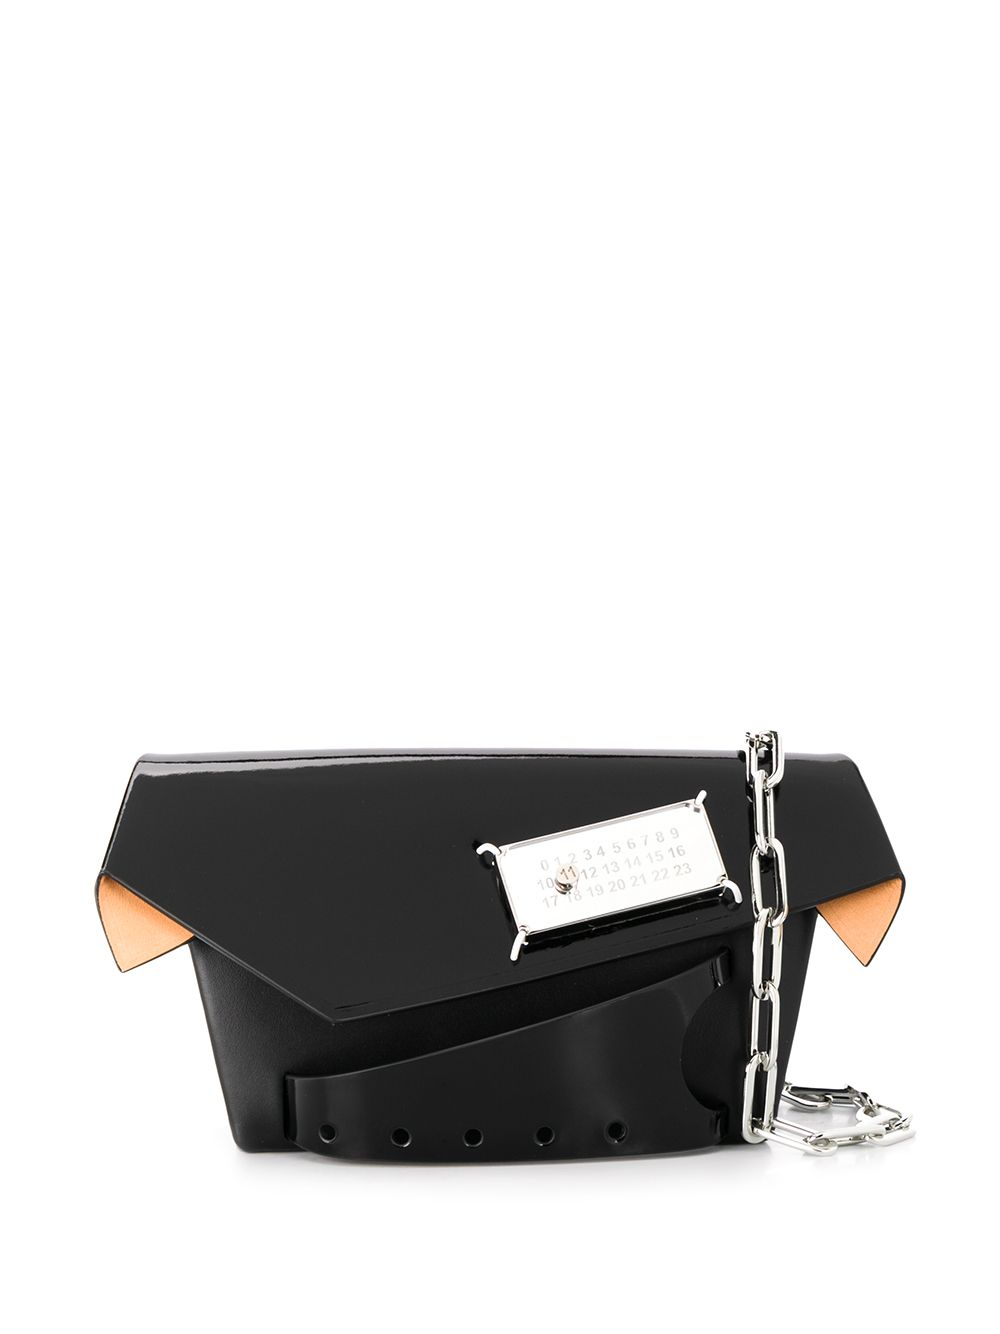 Snatched Leather Clutch